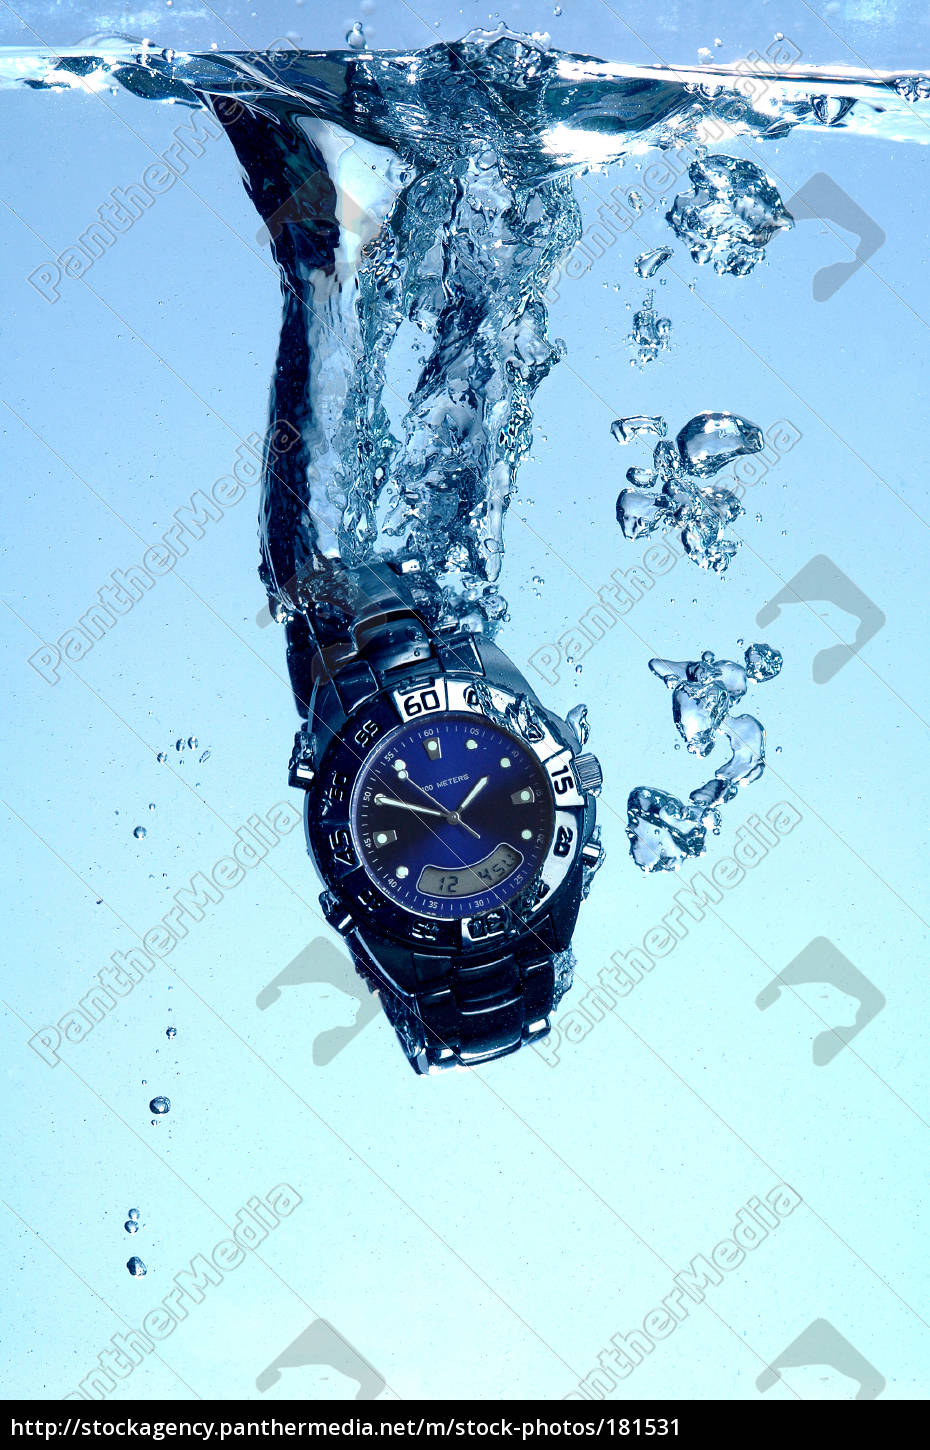 waterproof, watch - 181531